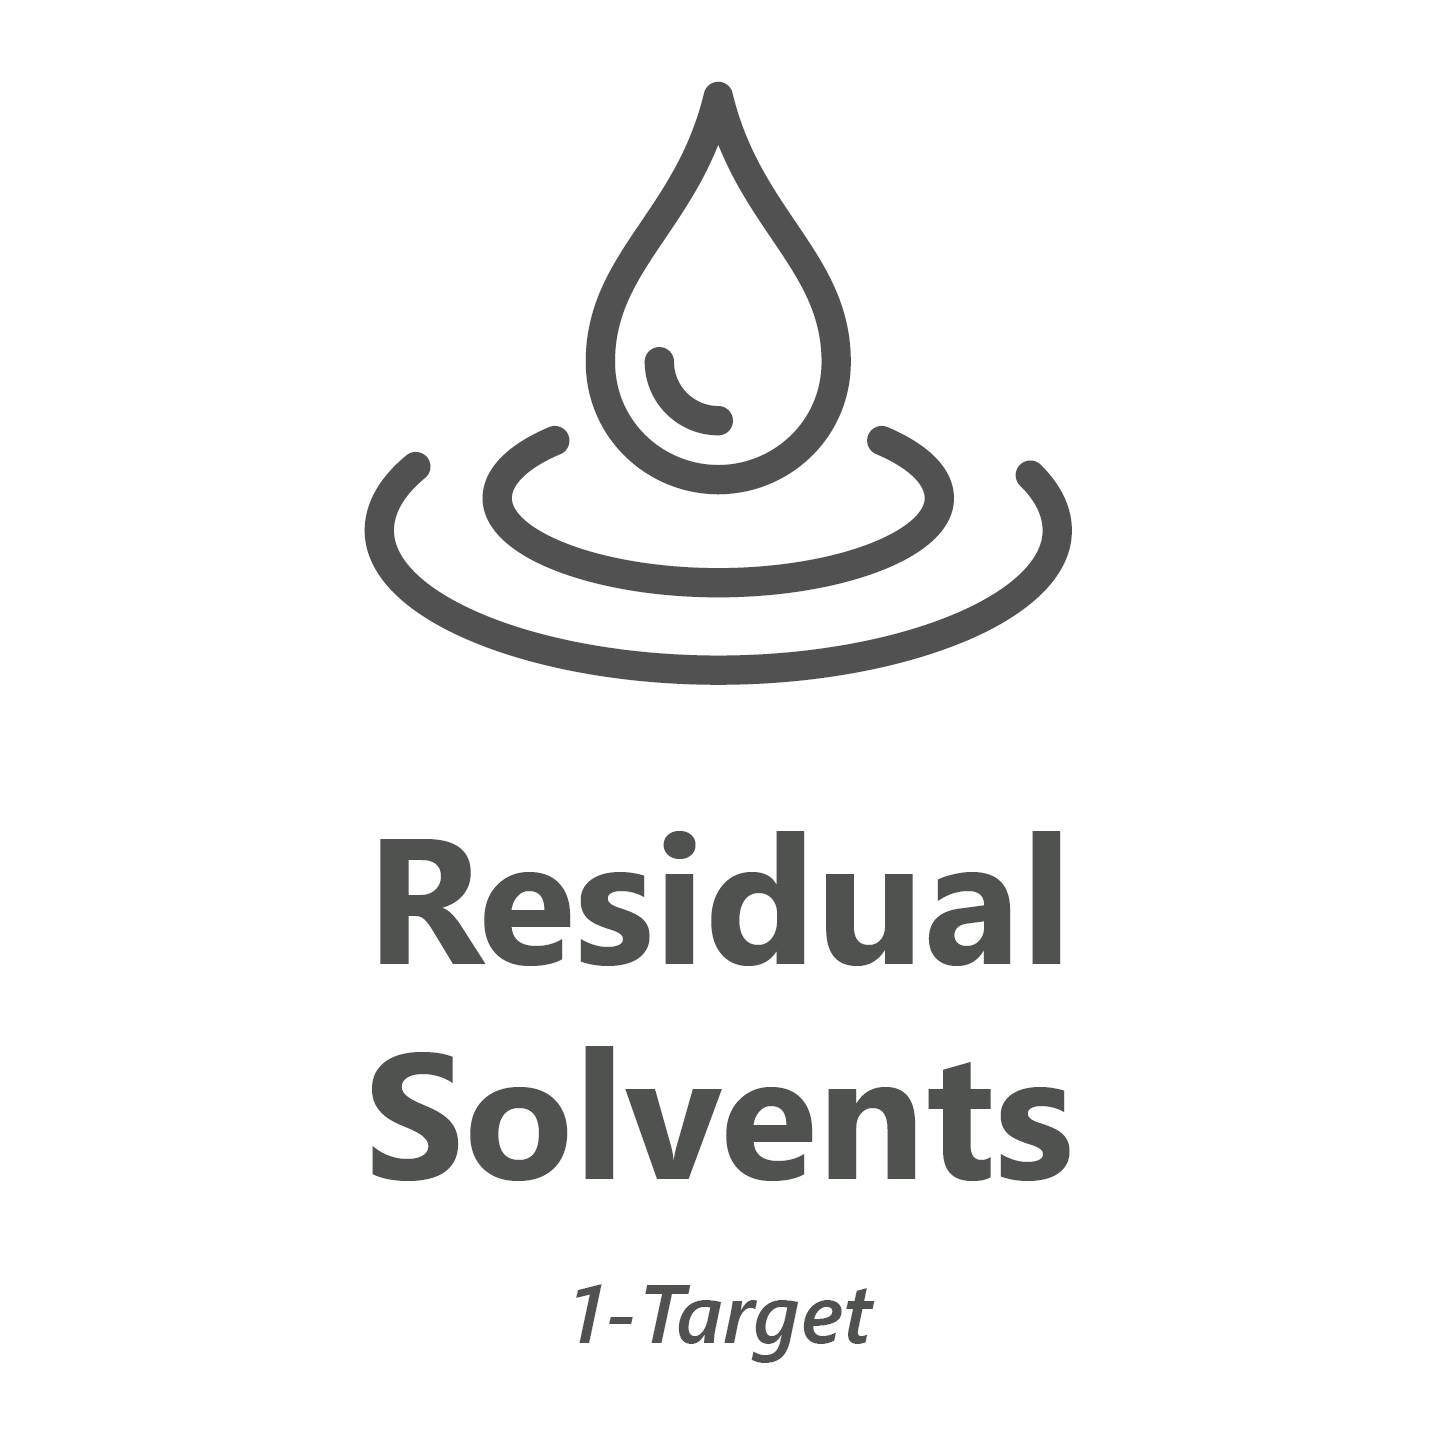 Web store icon for residual solvents, 1 target chemistry test.